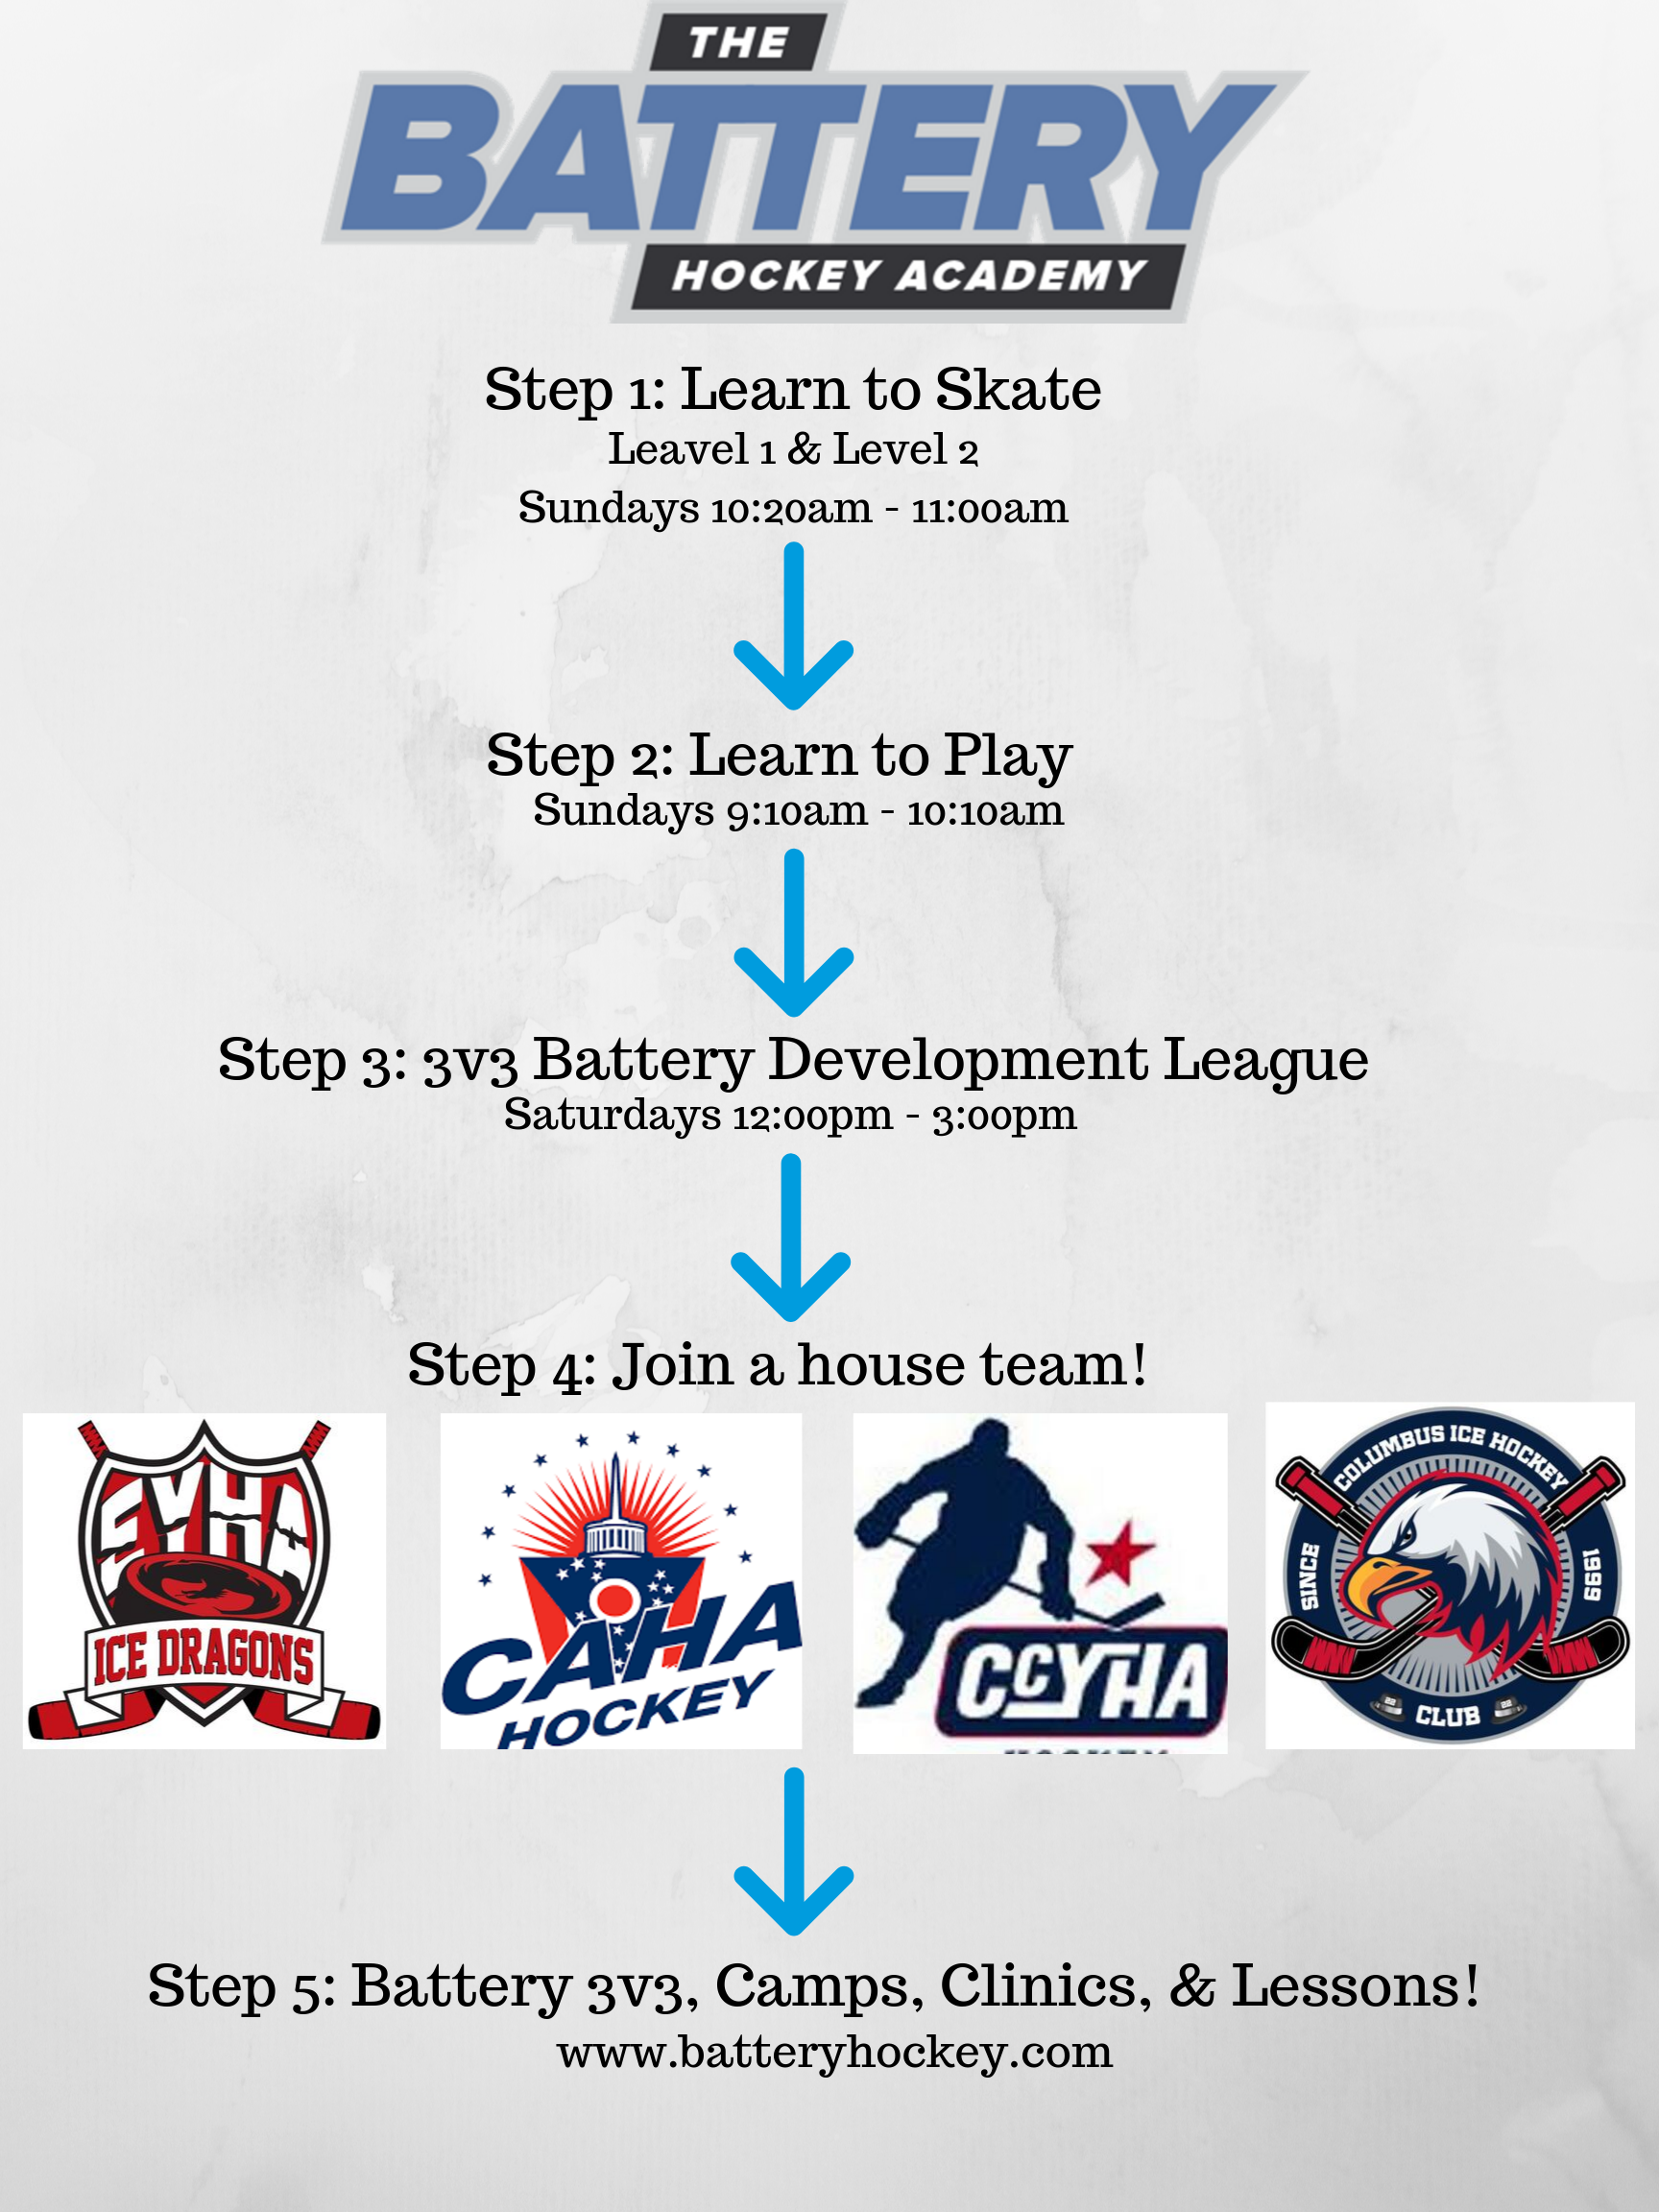 Player development steps